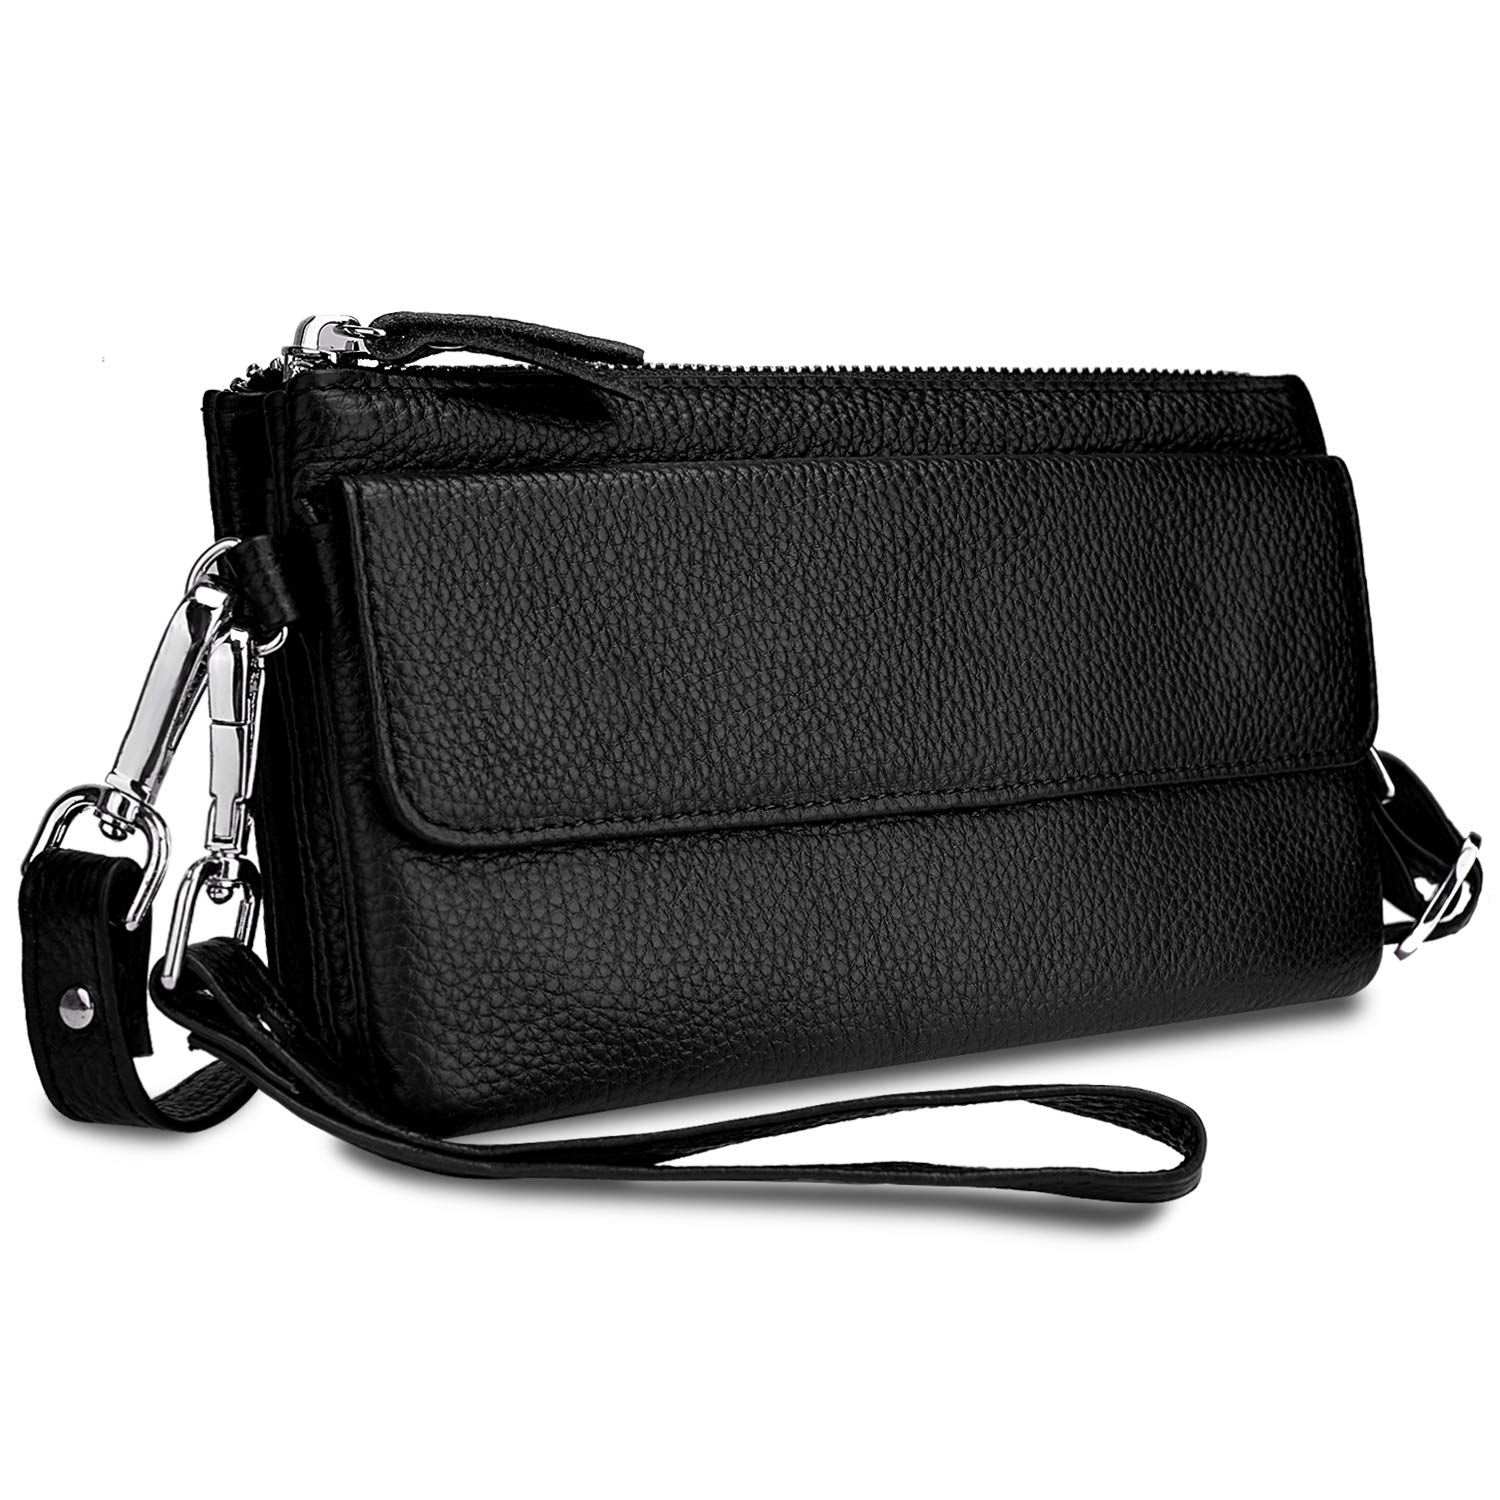 YALUXE Women's Leather Smartphone Wristlet Crossbody Clutch with RFID Blocking Card Slots Black by YALUXE